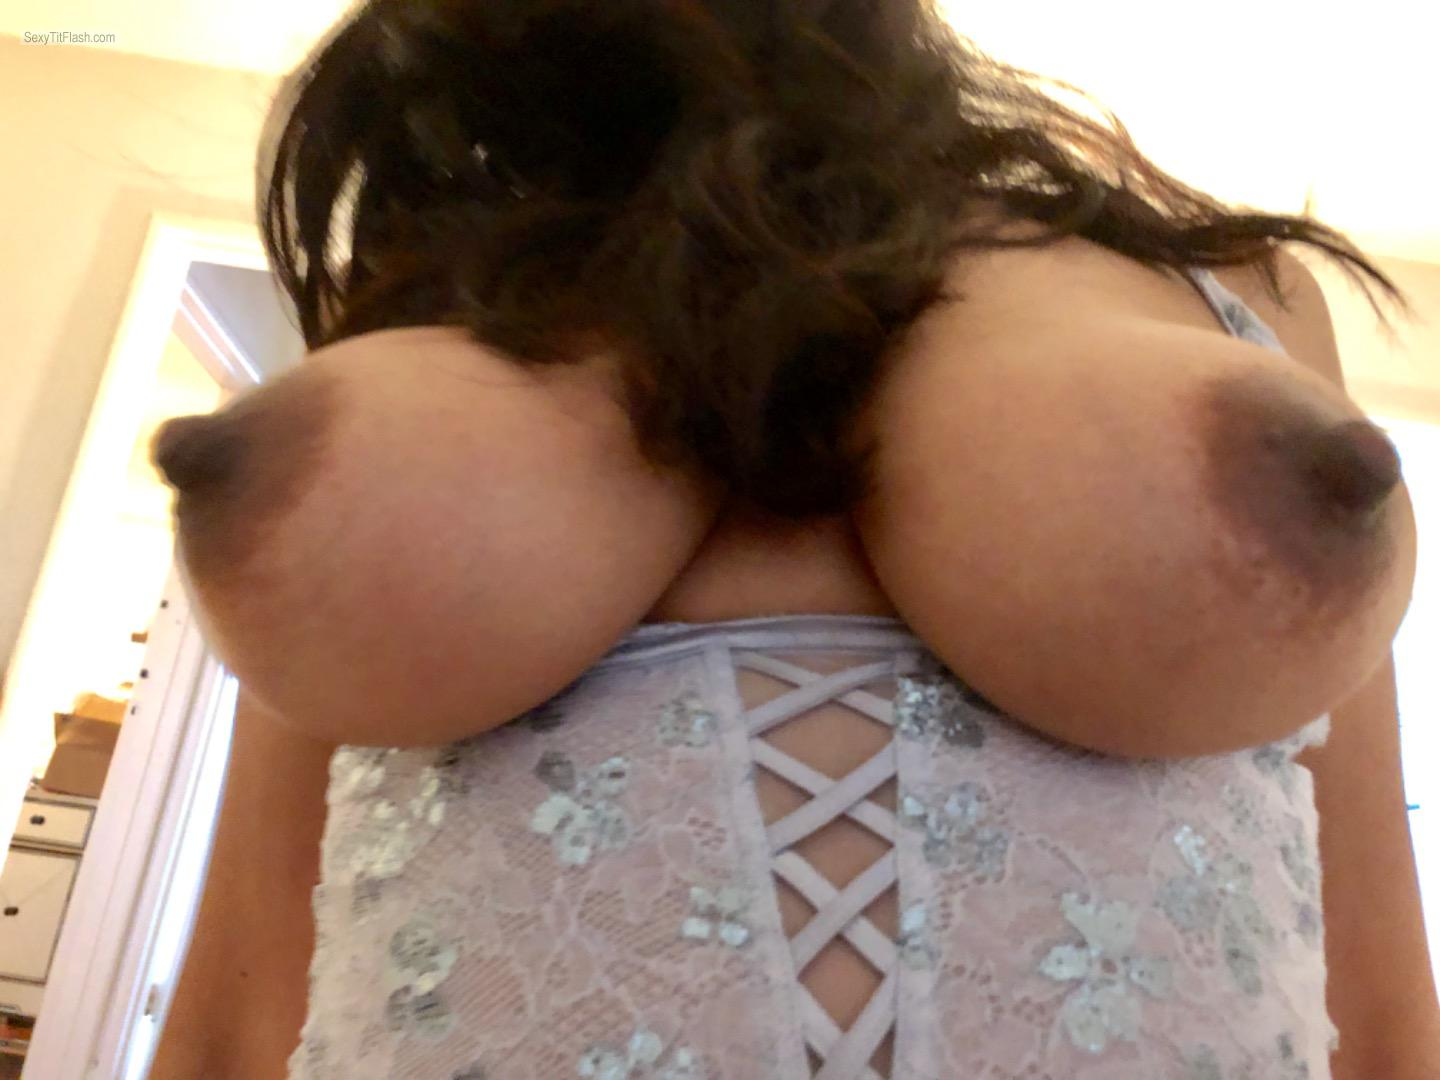 Tit Flash: Girlfriend's Big Tits (Selfie) - Alma from United States